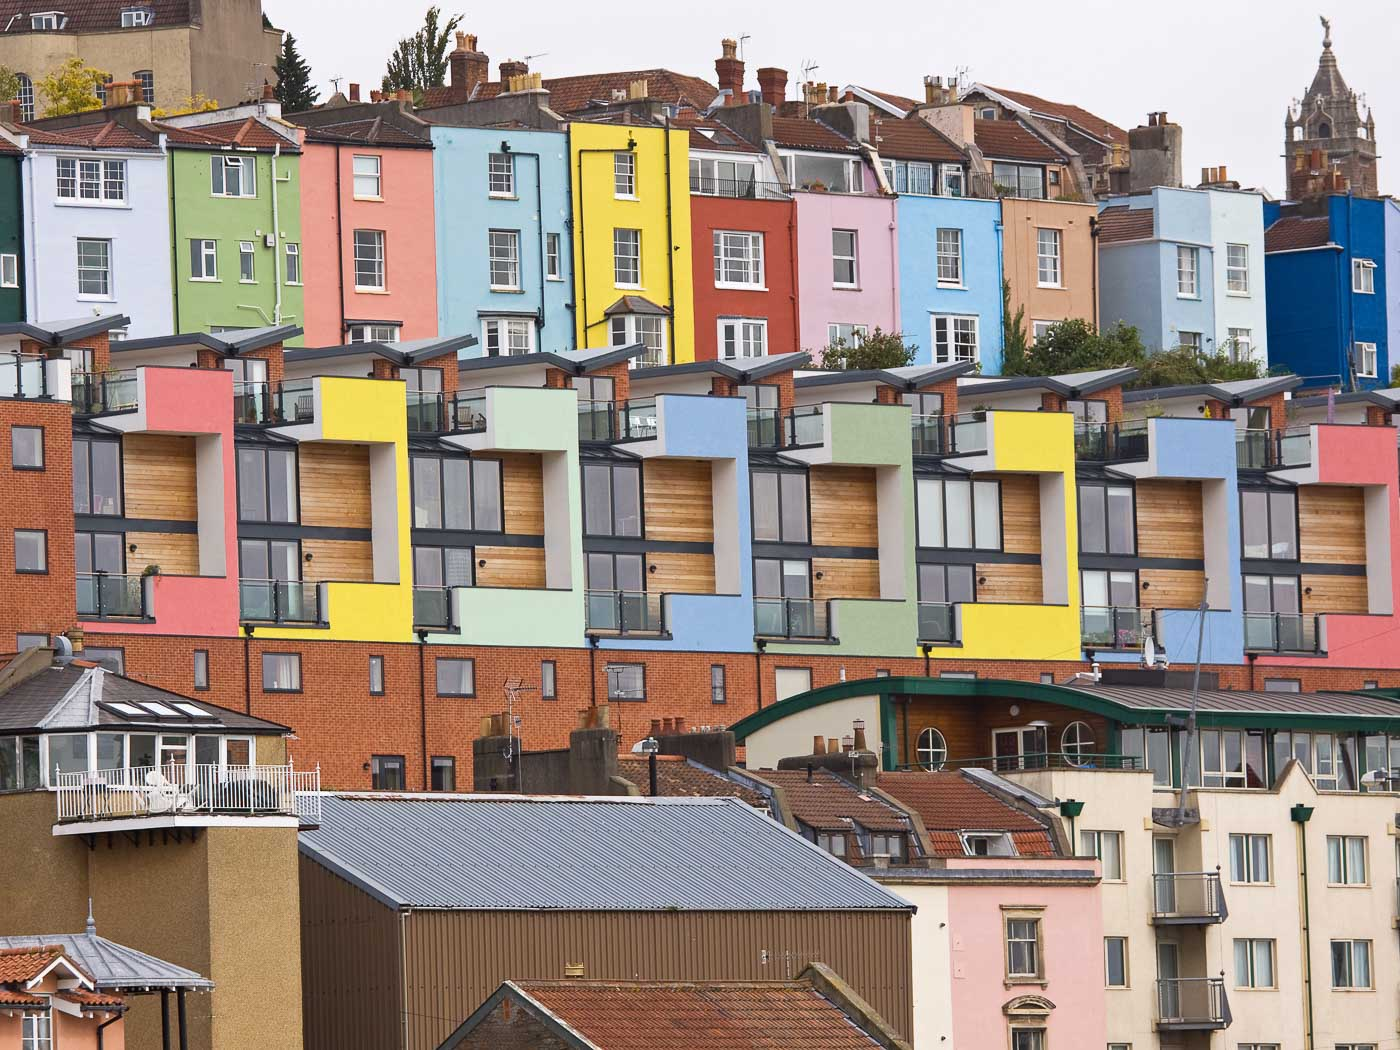 Colourful Cities by Zayah World - Bristol, UK